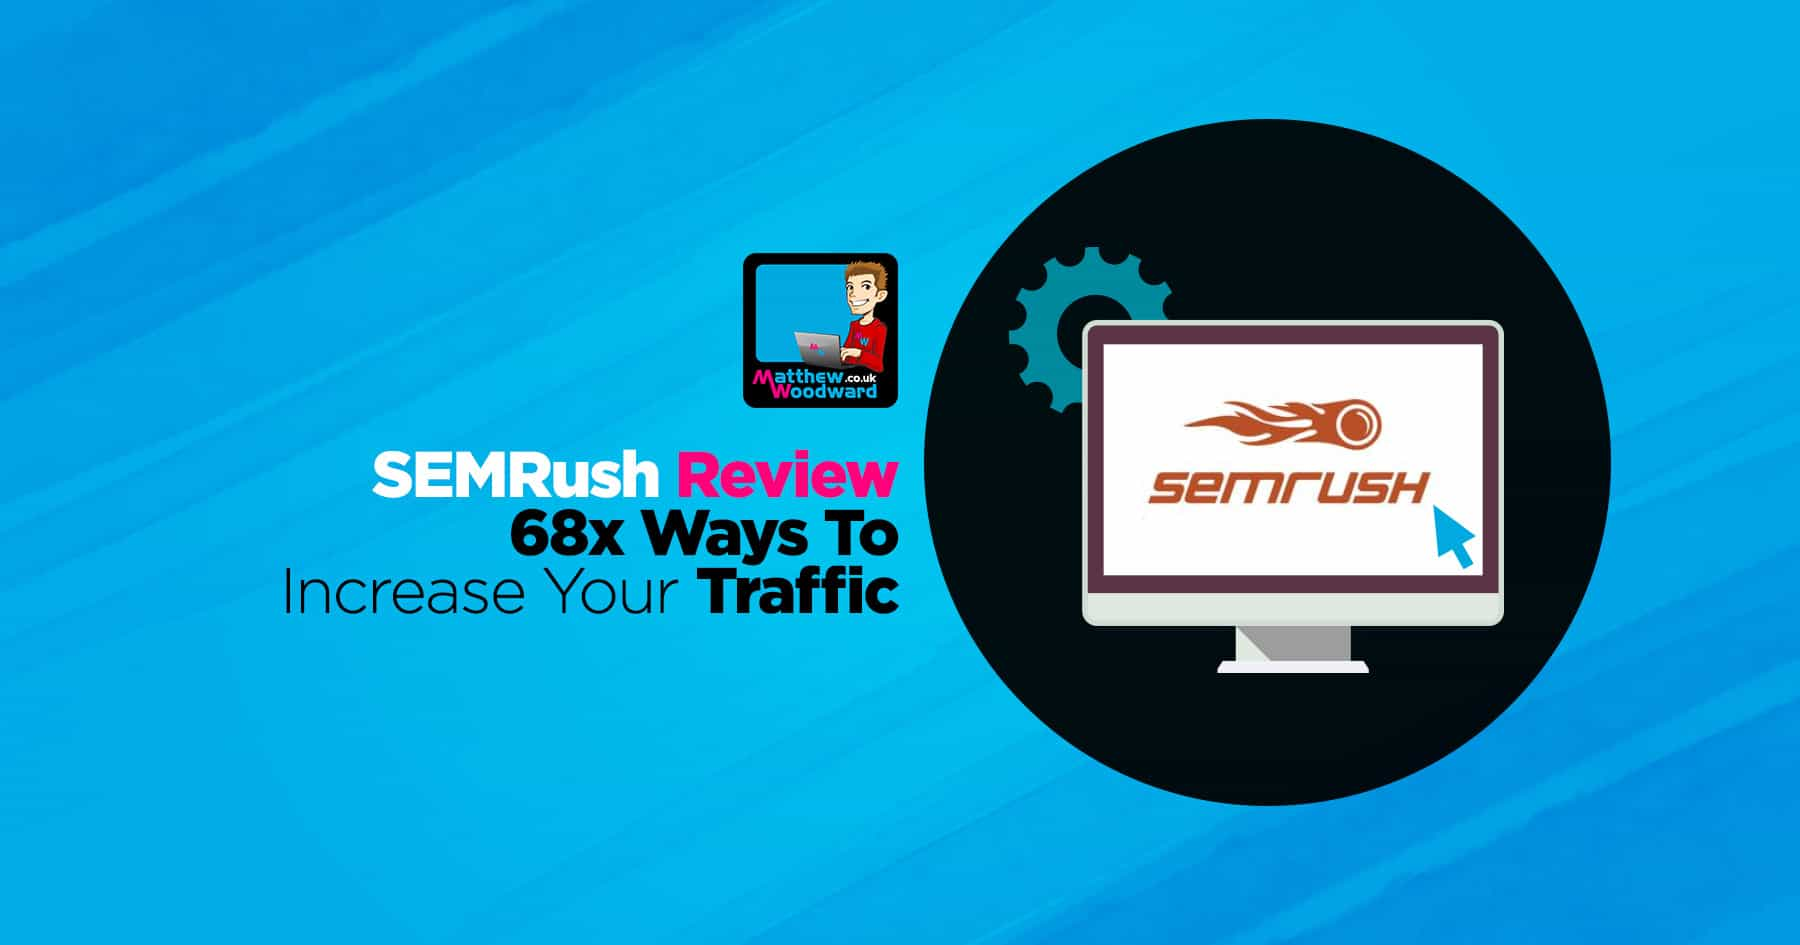 Https://Www.Semrush.Com/